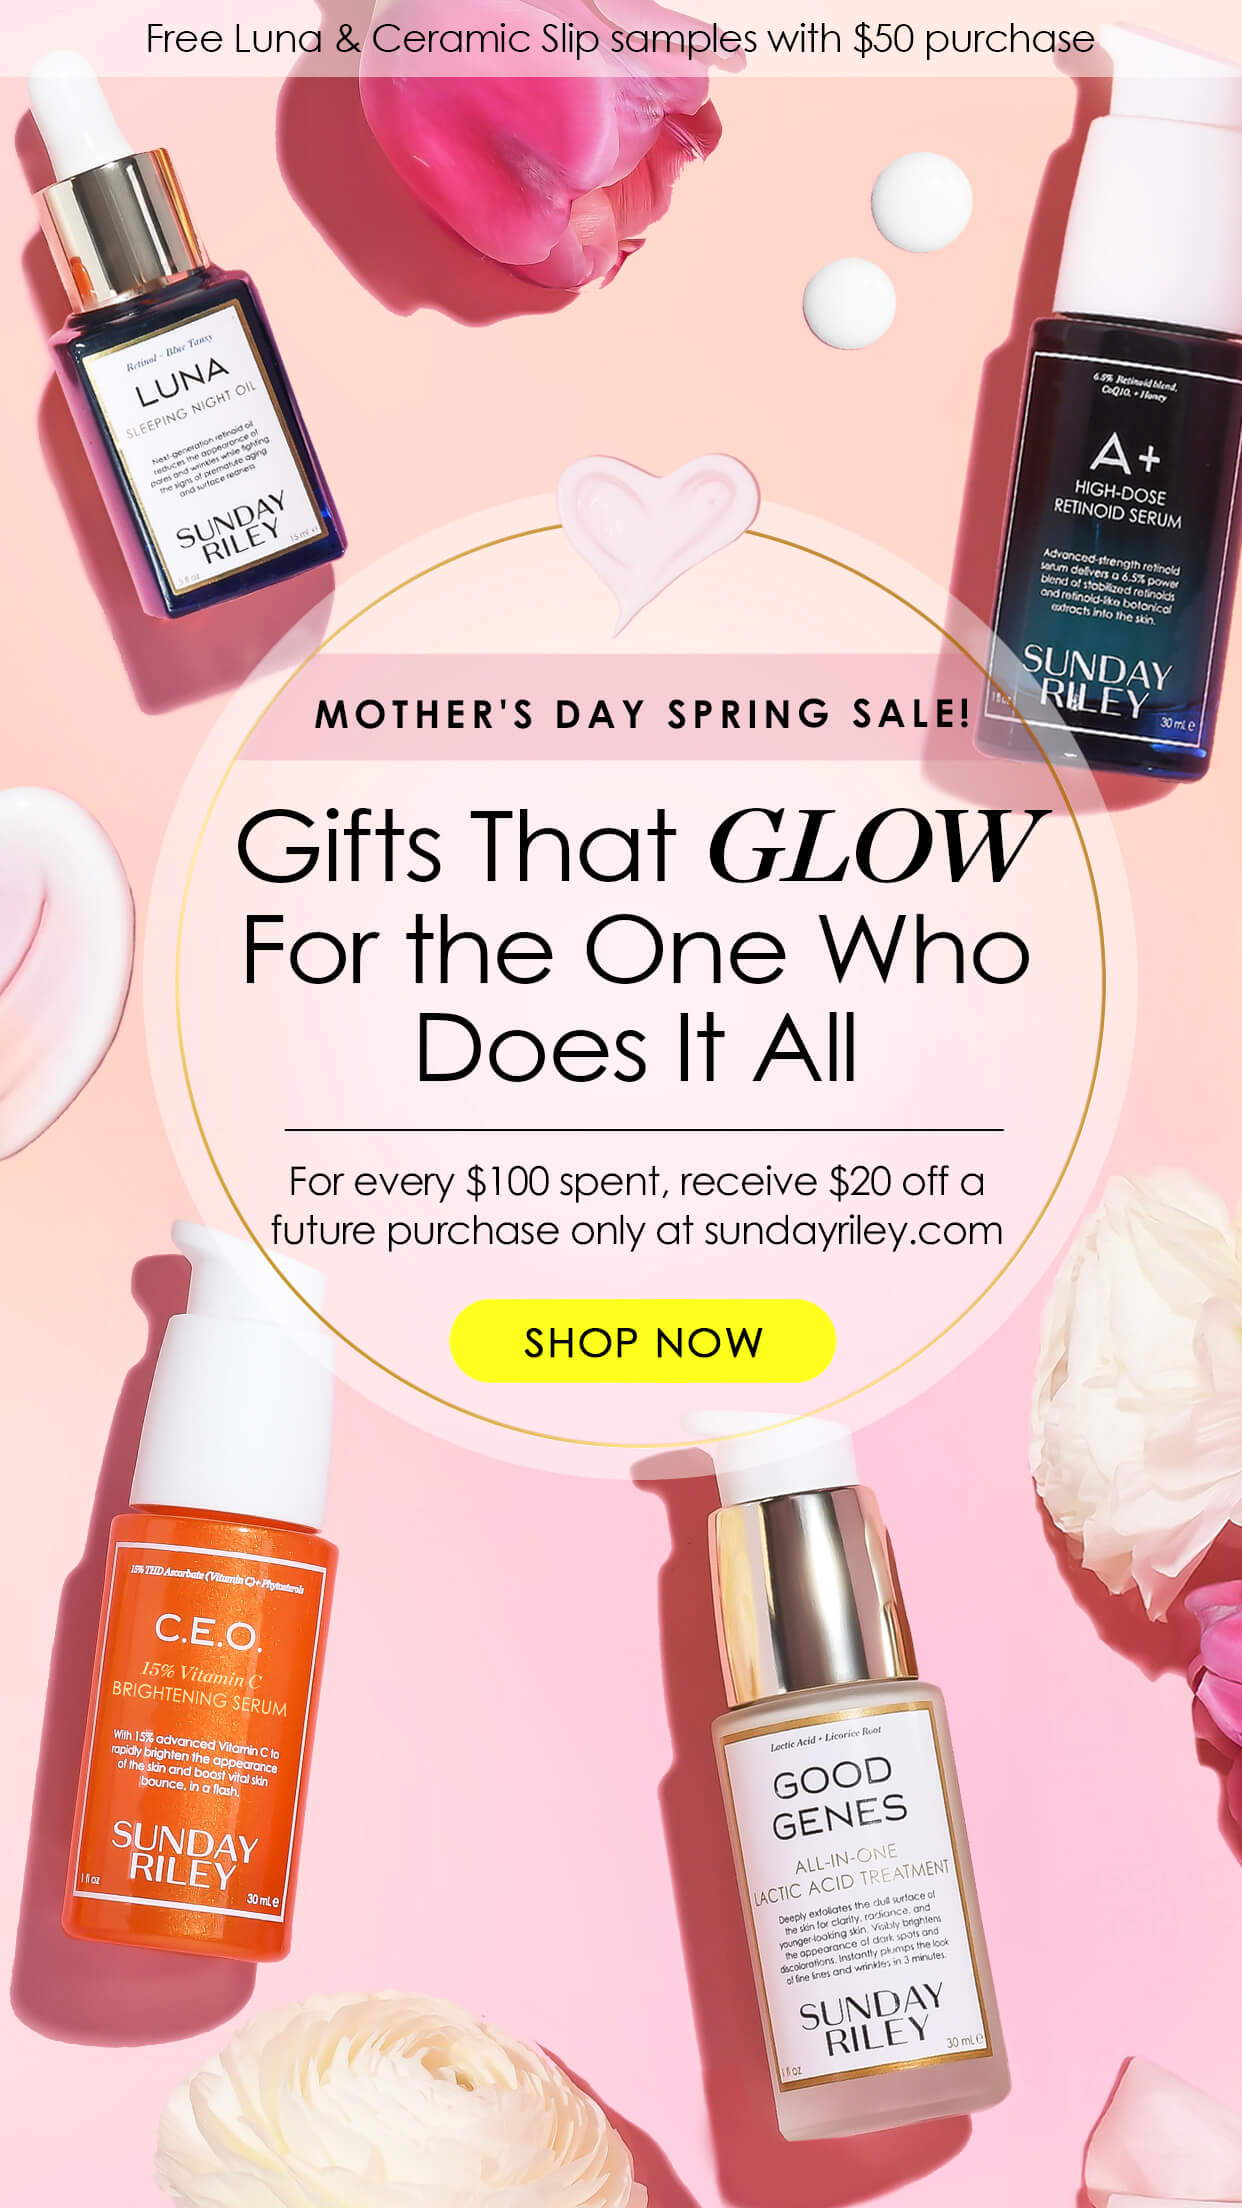 mother's day spring sale! gifts that glow for the one who does it all. For every $100 spent, receive $20 off a future purchase only at sundayriley.com